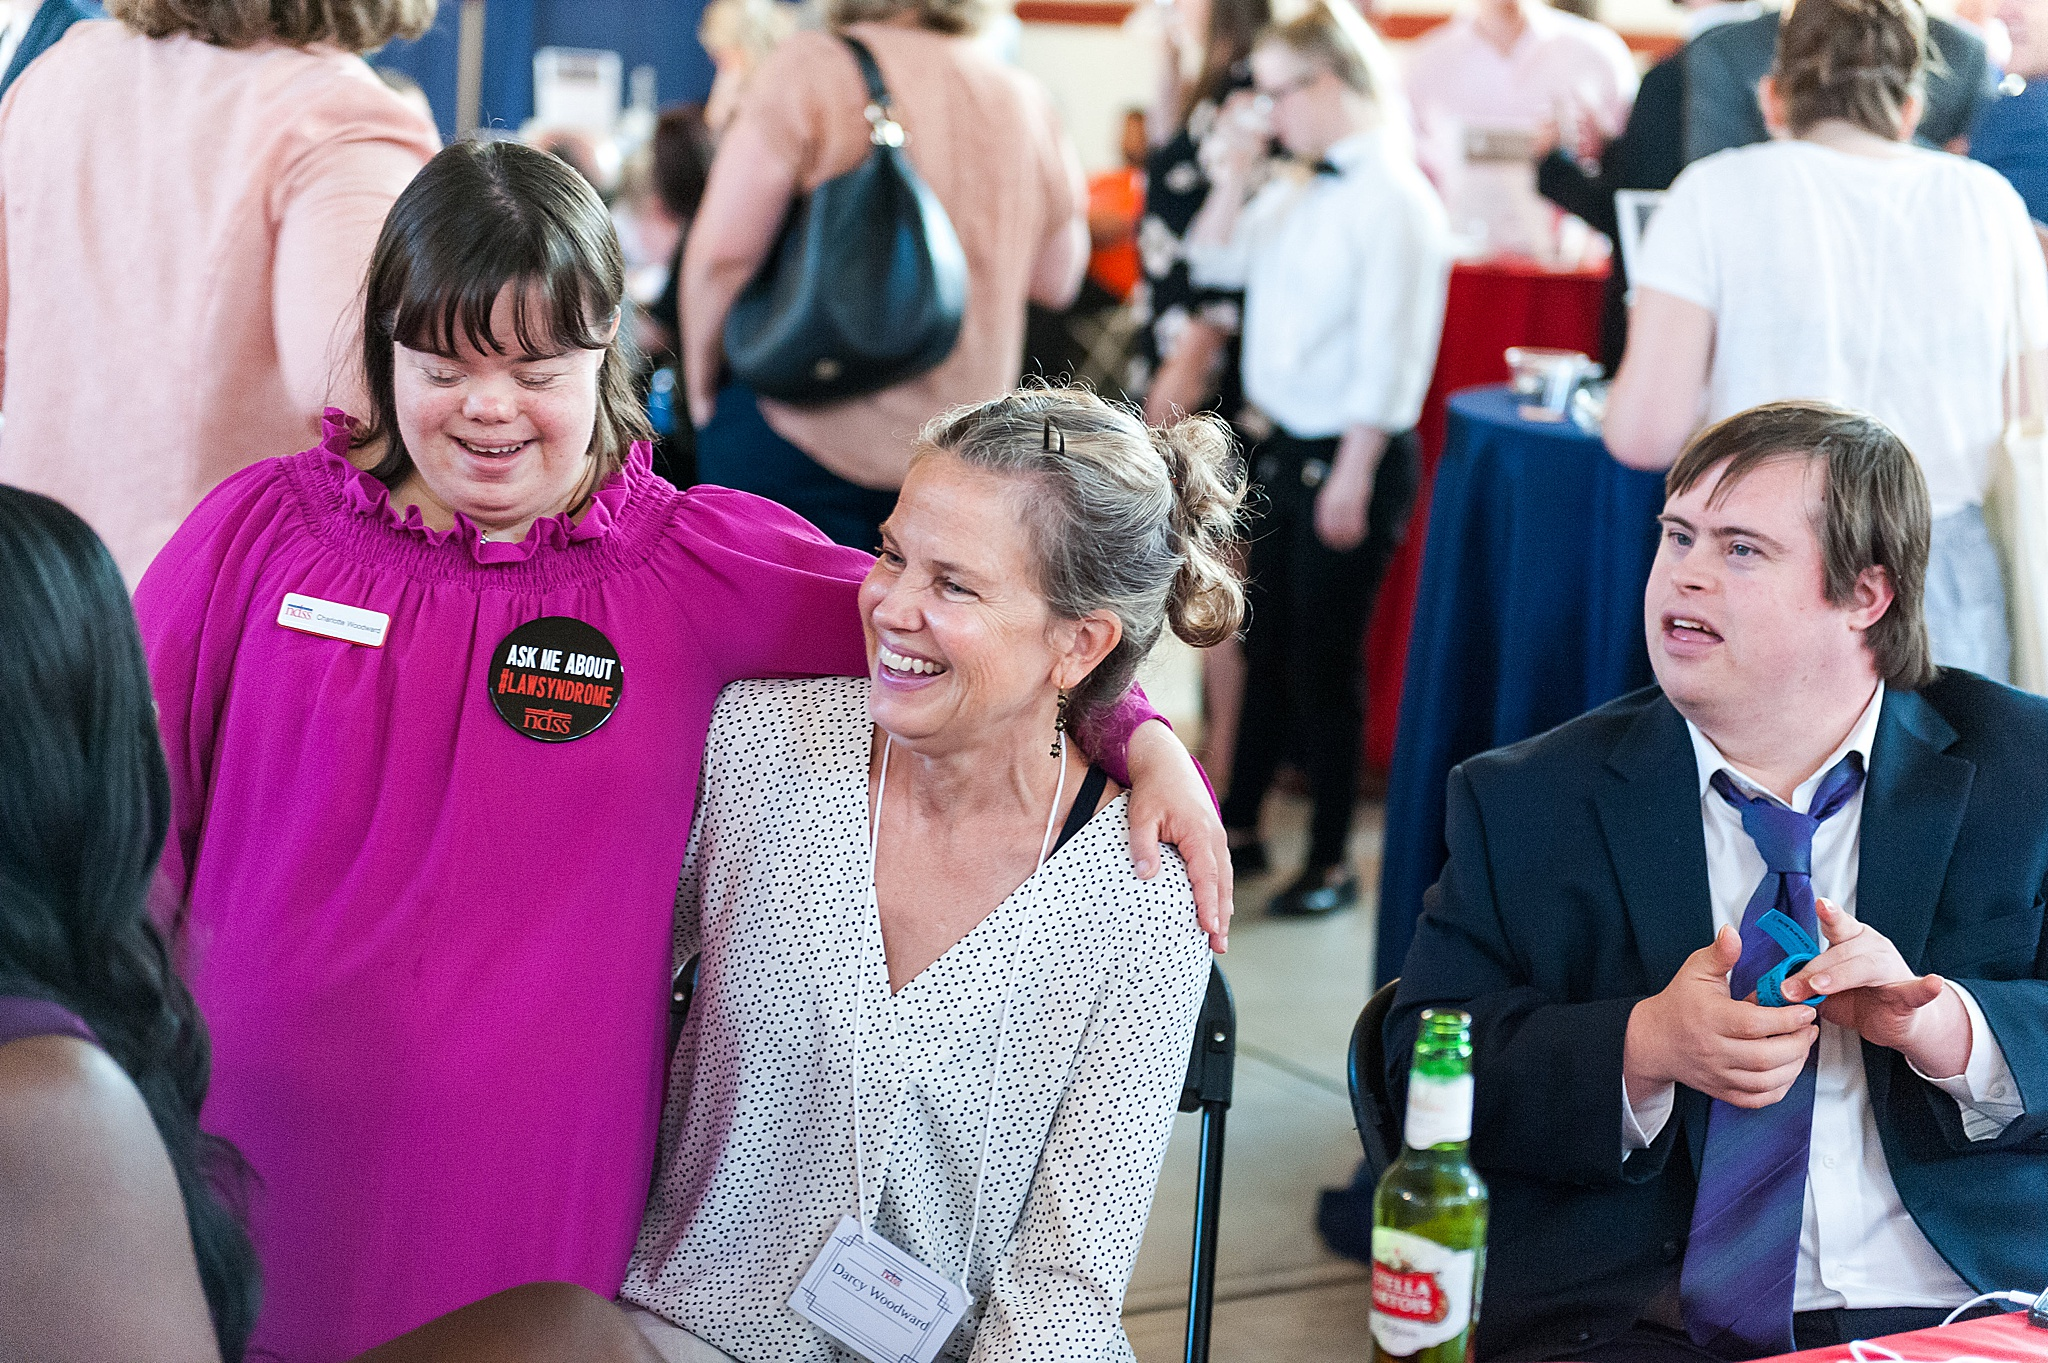 Wendy Zook Photography | National Down Syndrome Society, Down Syndrome awareness, Down Syndrome advocate, DS advocate, MD Down Syndrome advocate, Down Syndrome Photographer, DS photographer, Down Syndrome photography, NDSS, Caring with Congress 2019